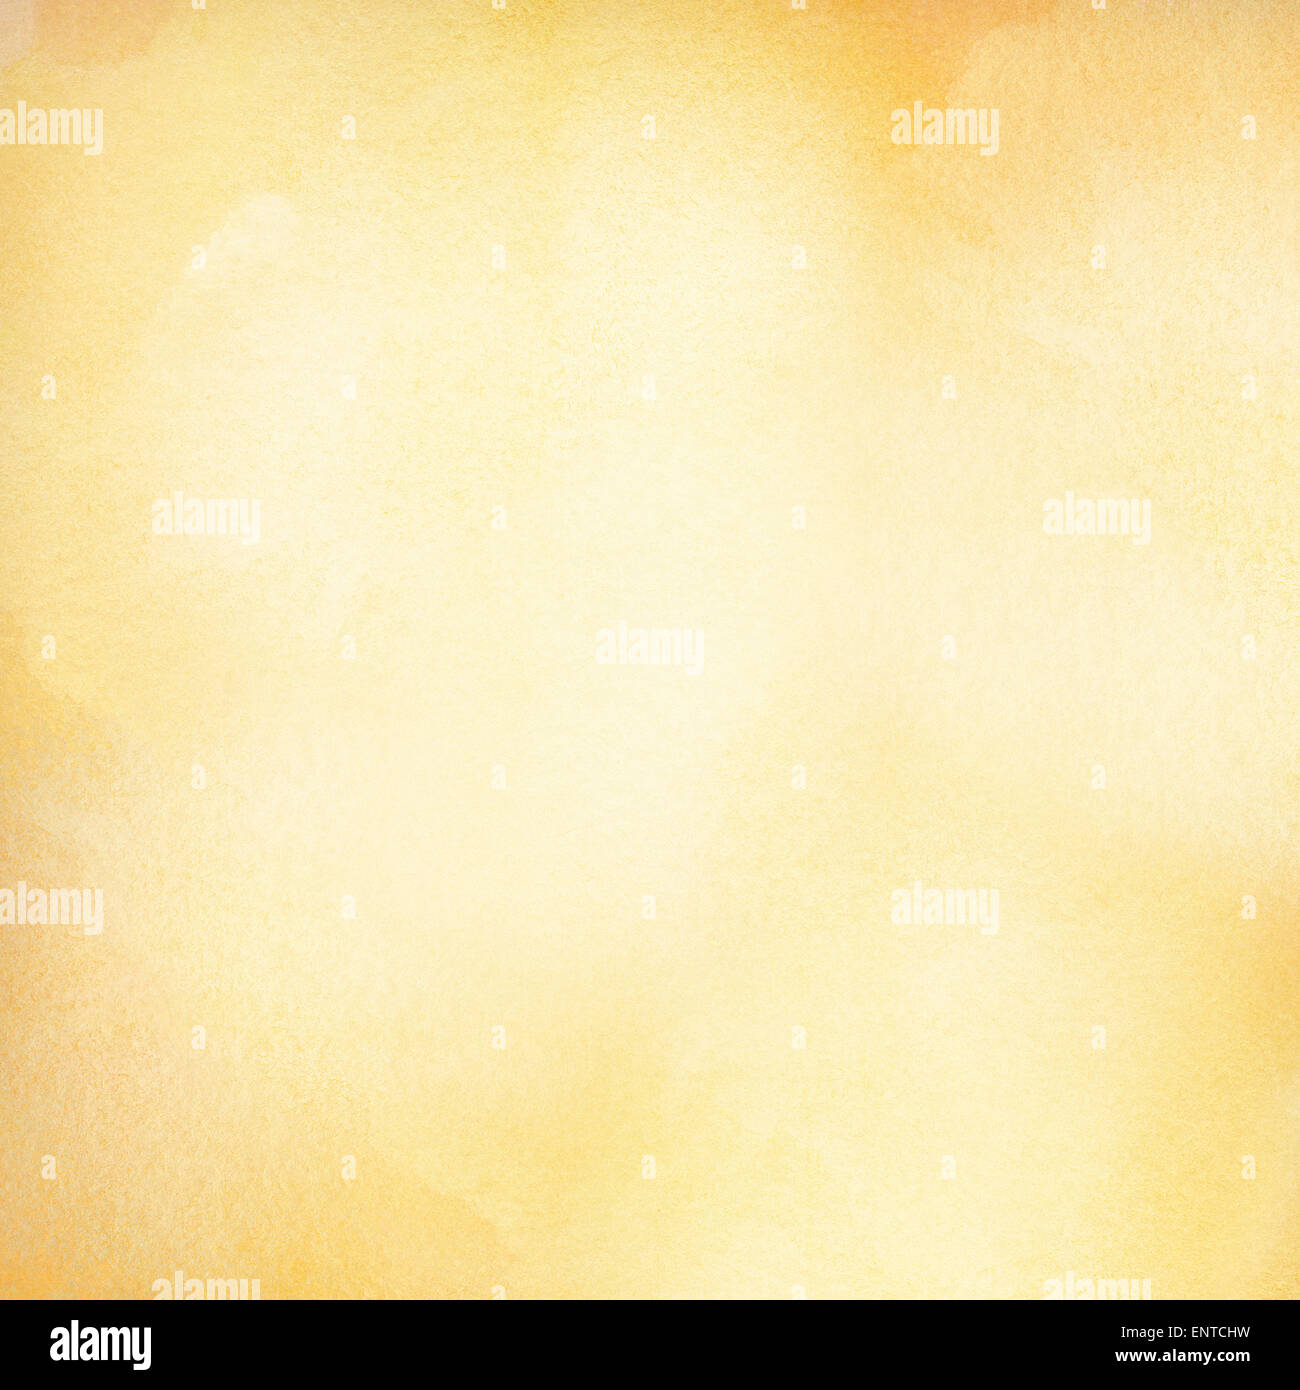 Abstract light orange watercolor background spring, summer theme with copy space - Stock Image